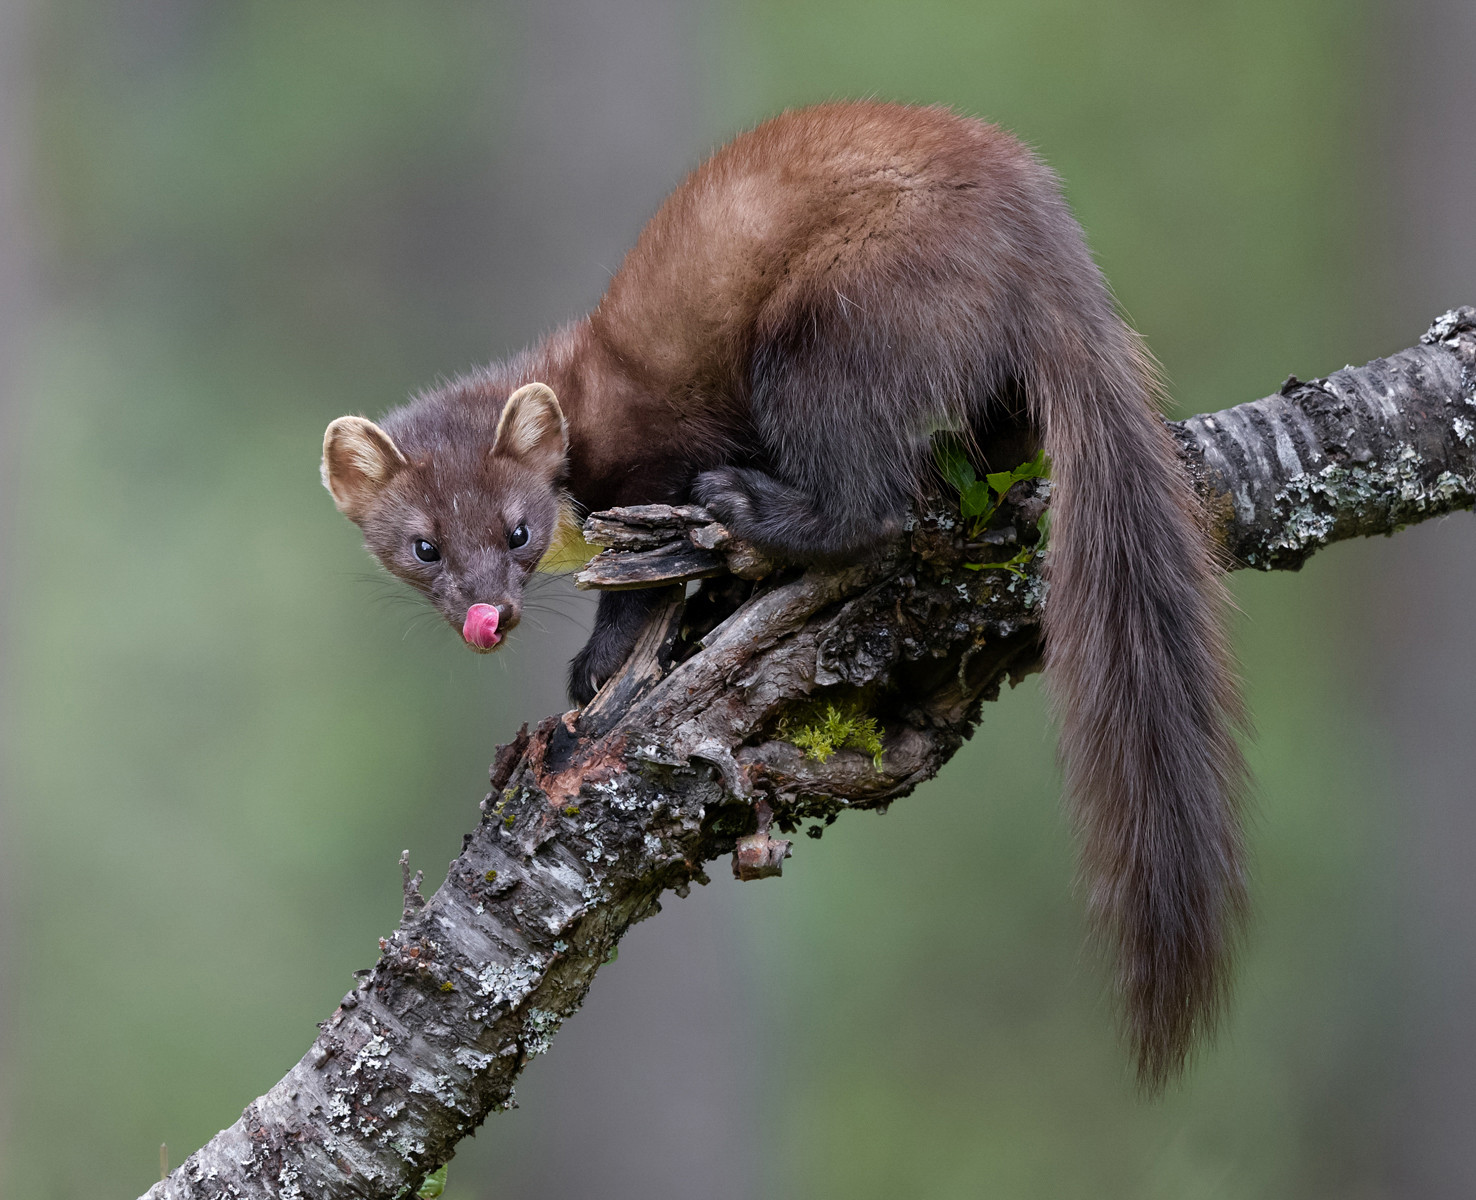 COLOUR - Female Pine Marten by Ian Mitchell (18 marks)